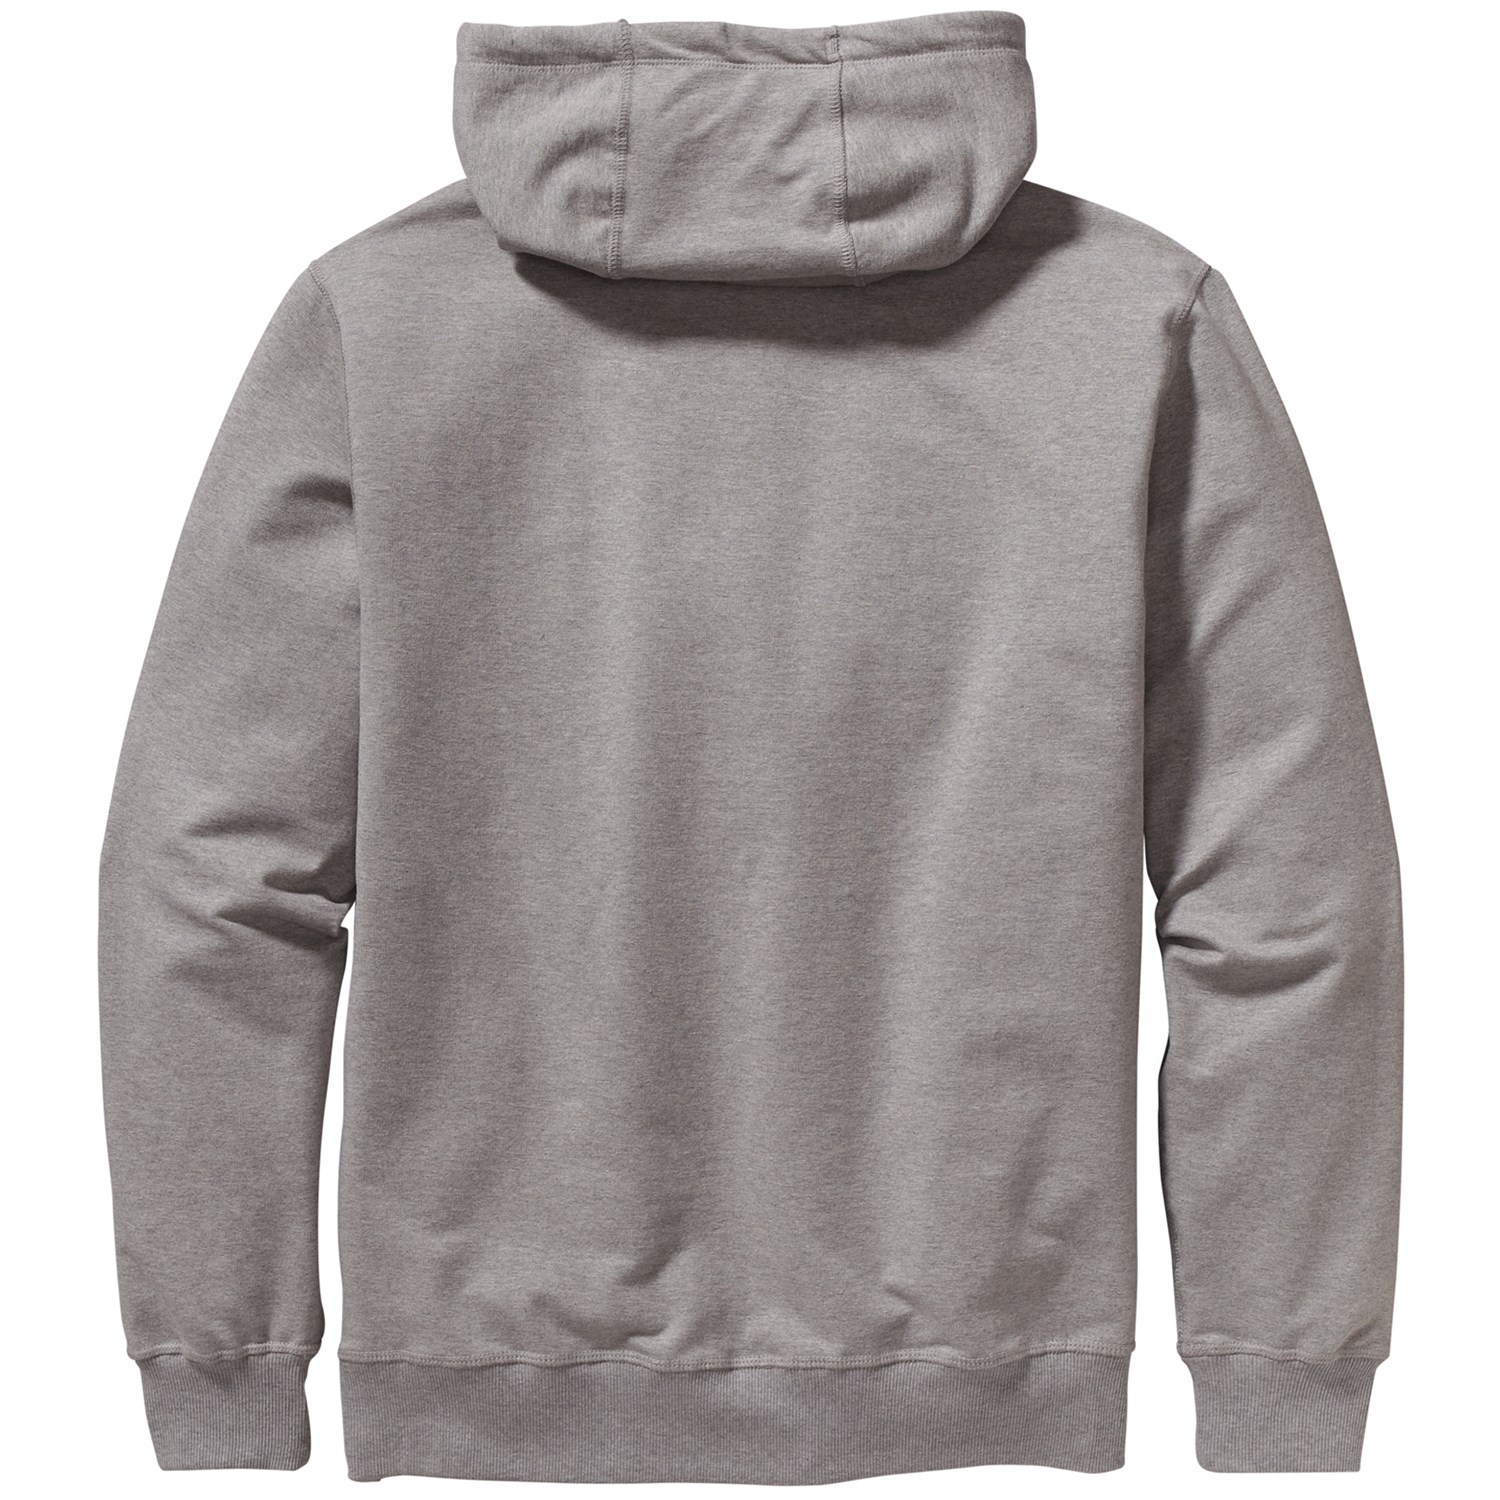 Patagonia Line Logo Midweight Pullover Hoodie | evo